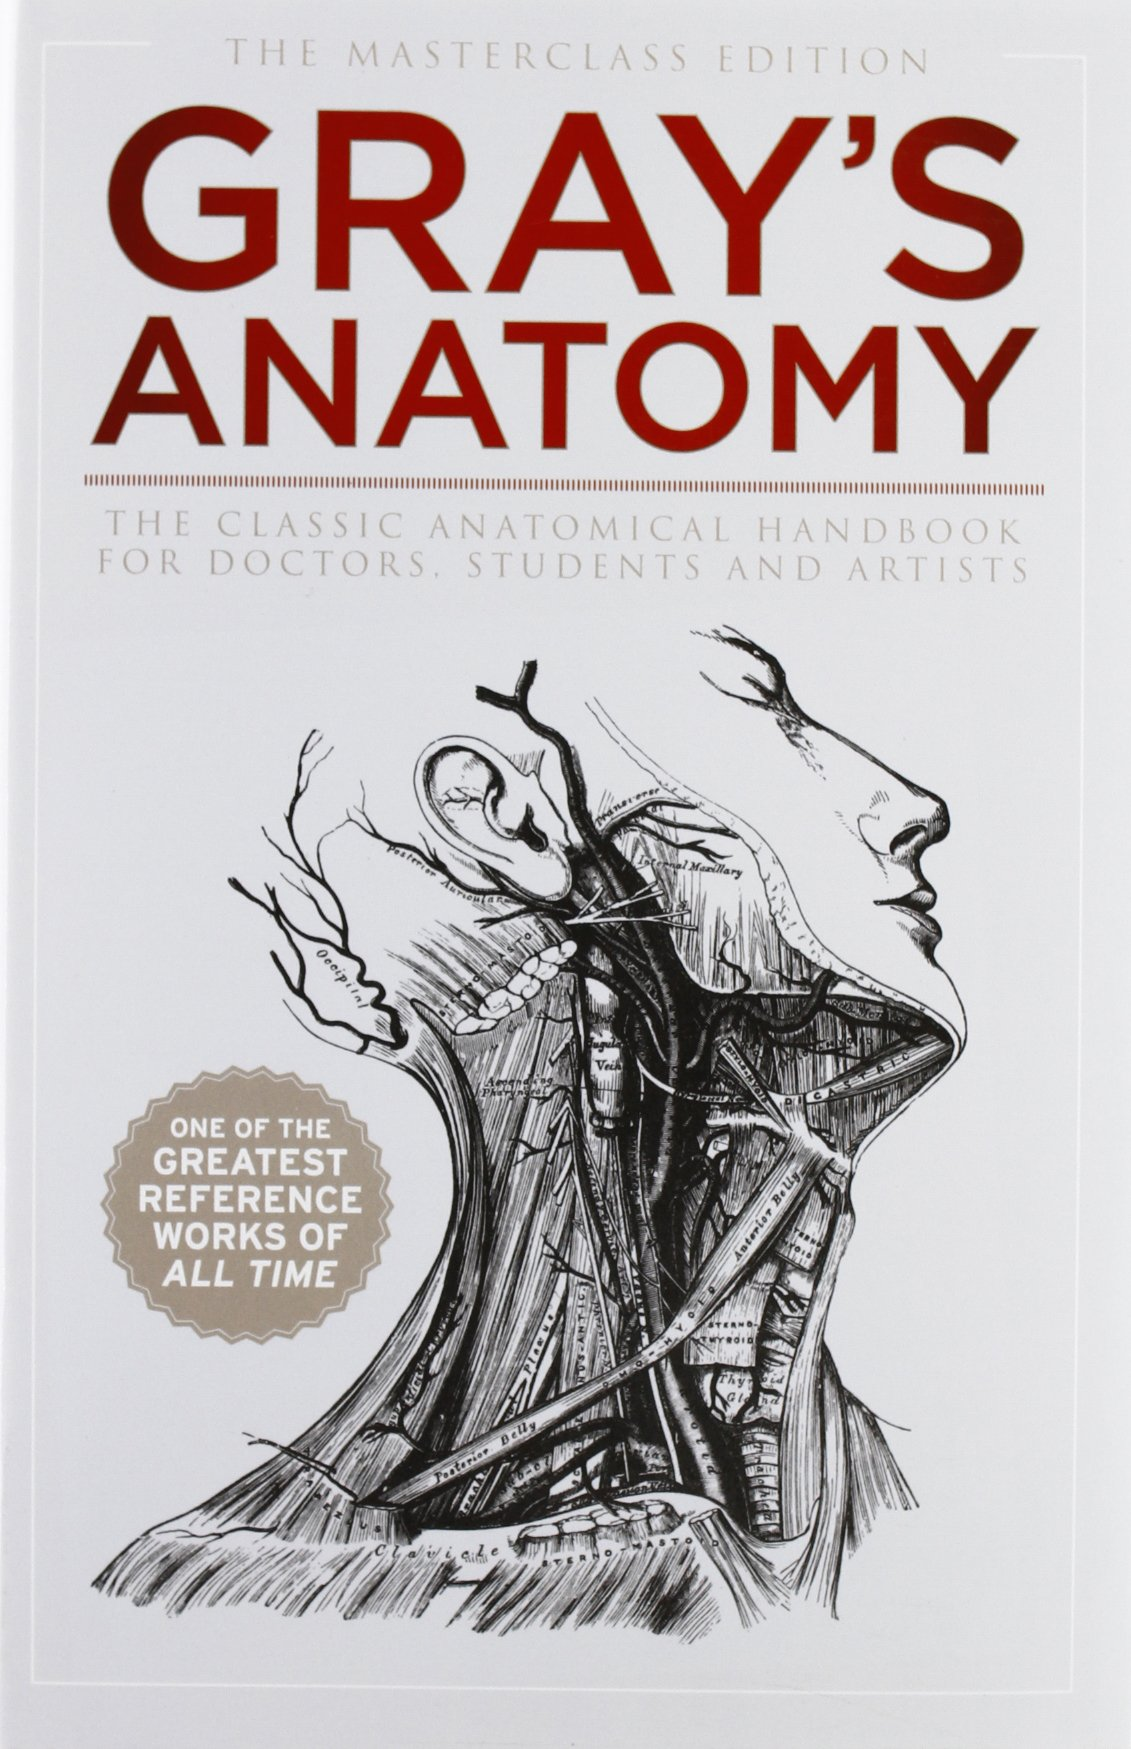 Amazon Buy Grays Anatomy Book Online At Low Prices In India